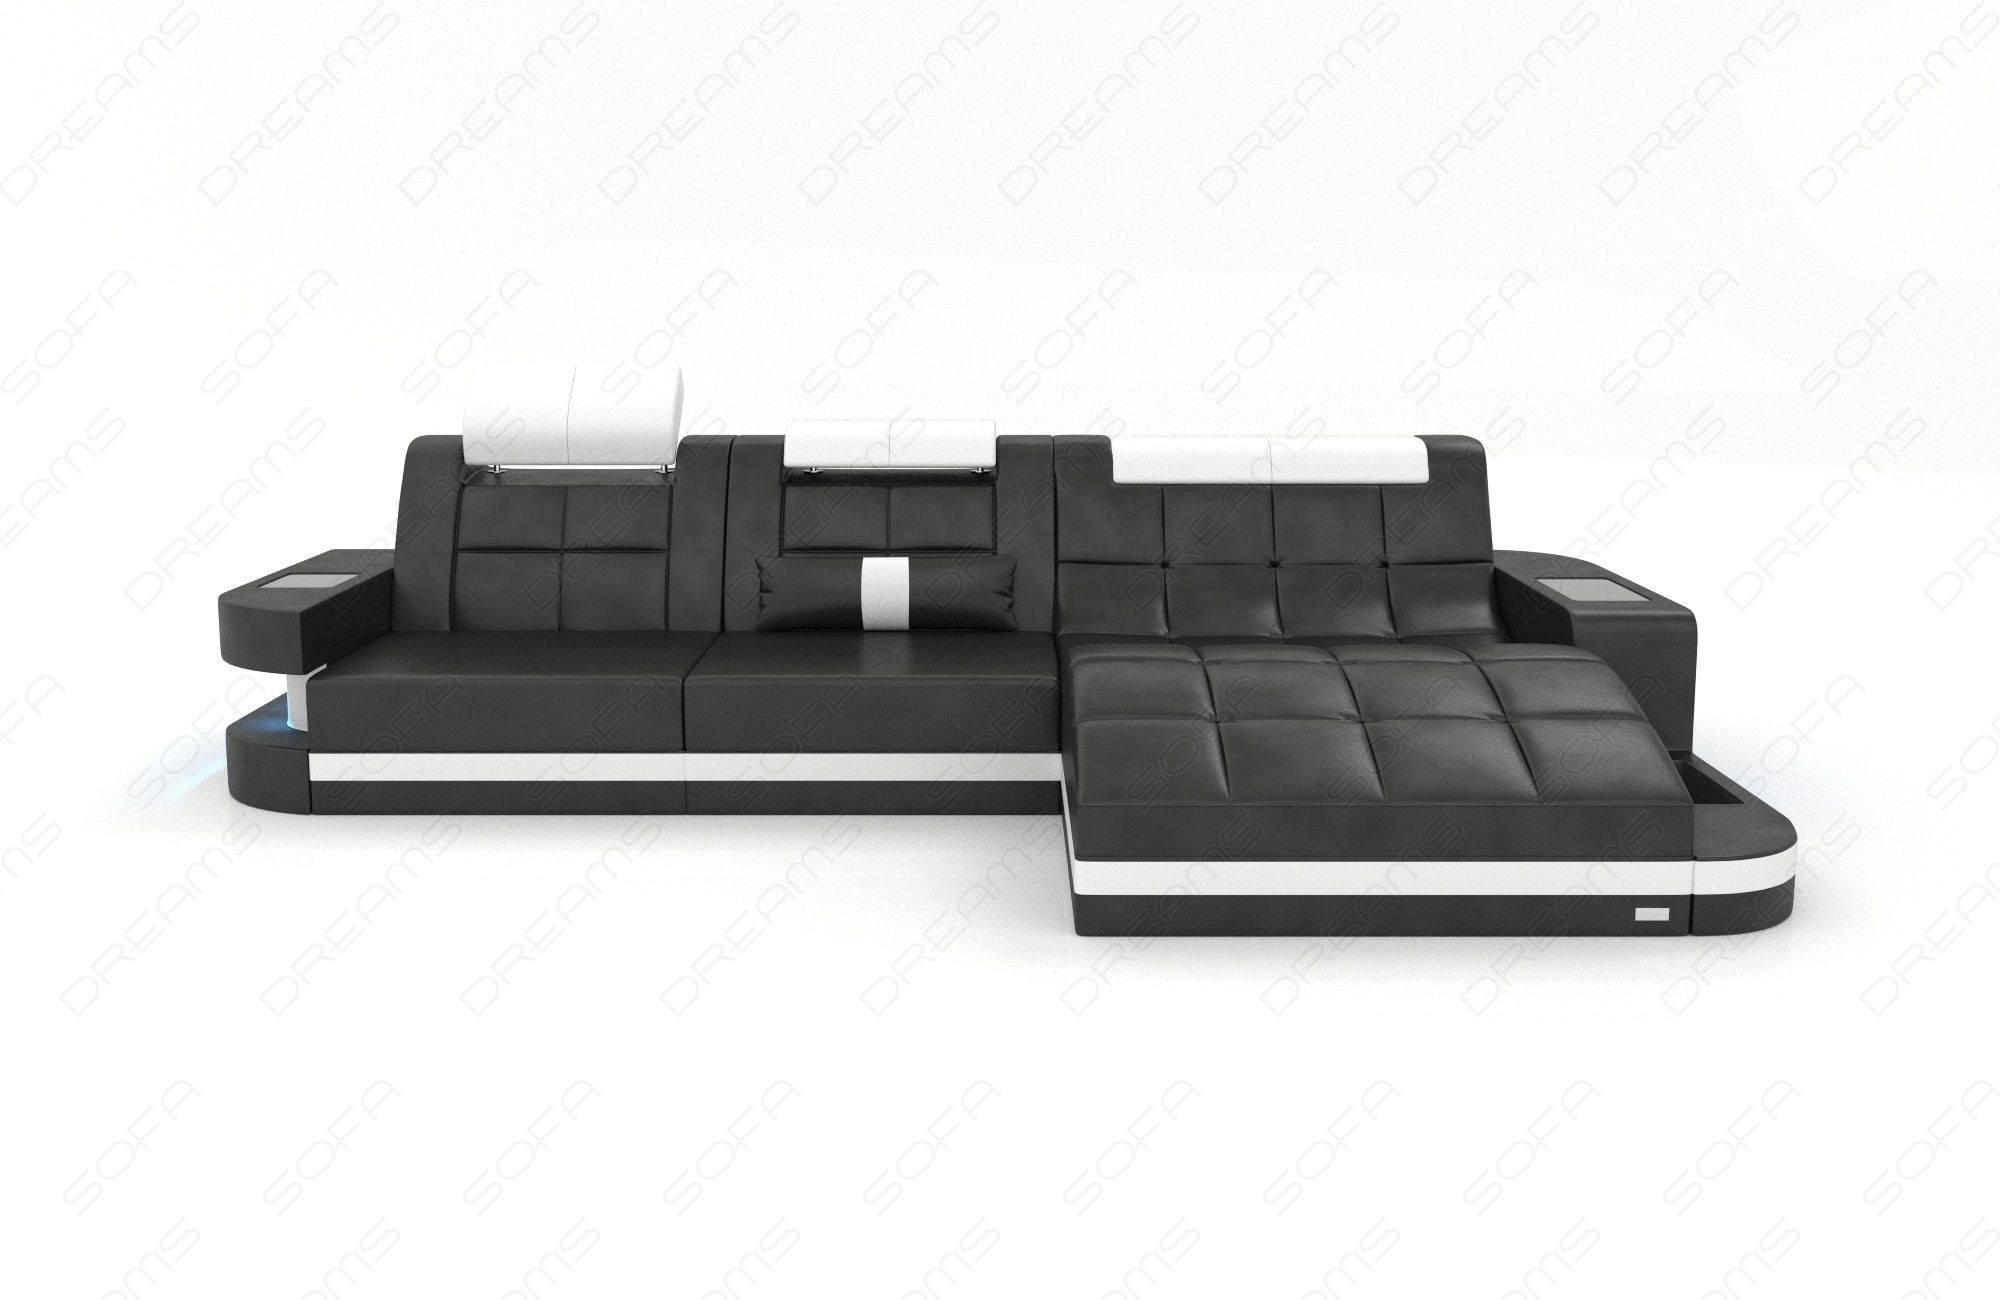 Luxury sectional sofa jacksonville l shape led for Sectional sofa jacksonville